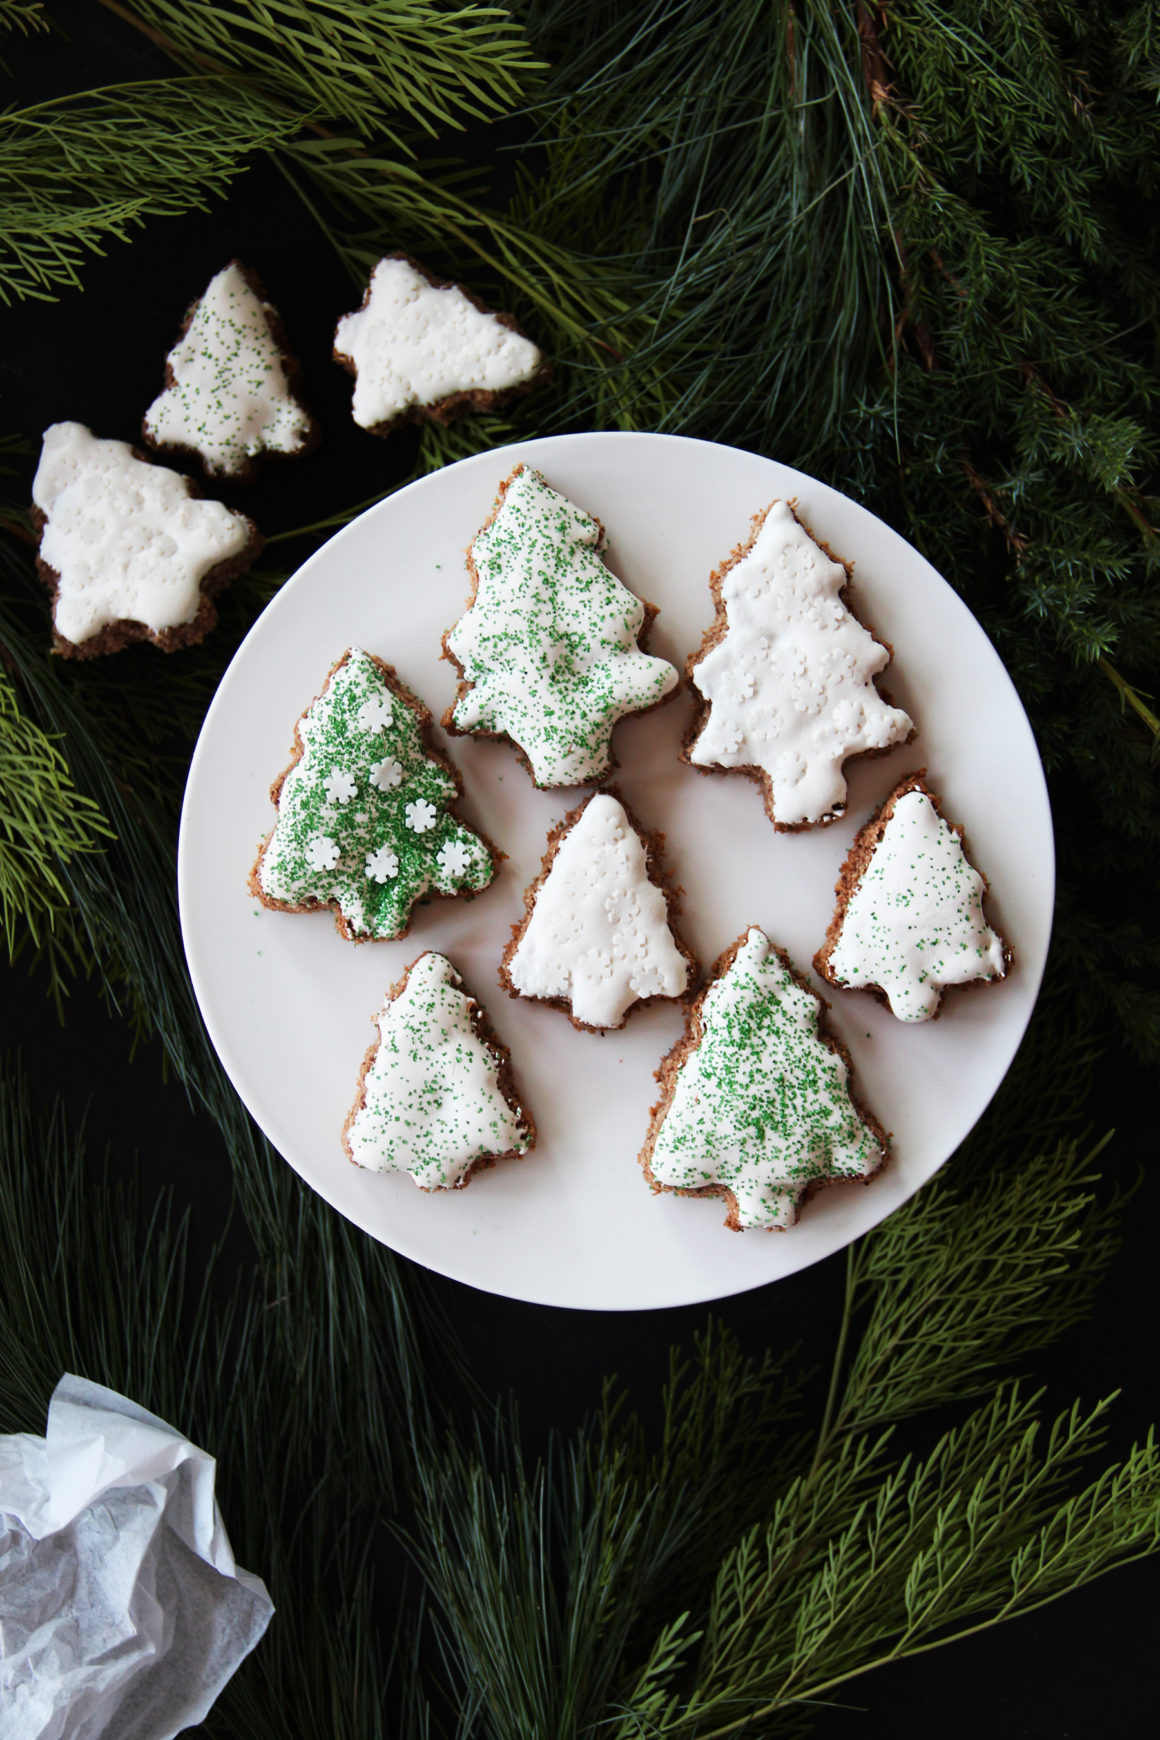 Chocolate Coconut Stars (& Trees)